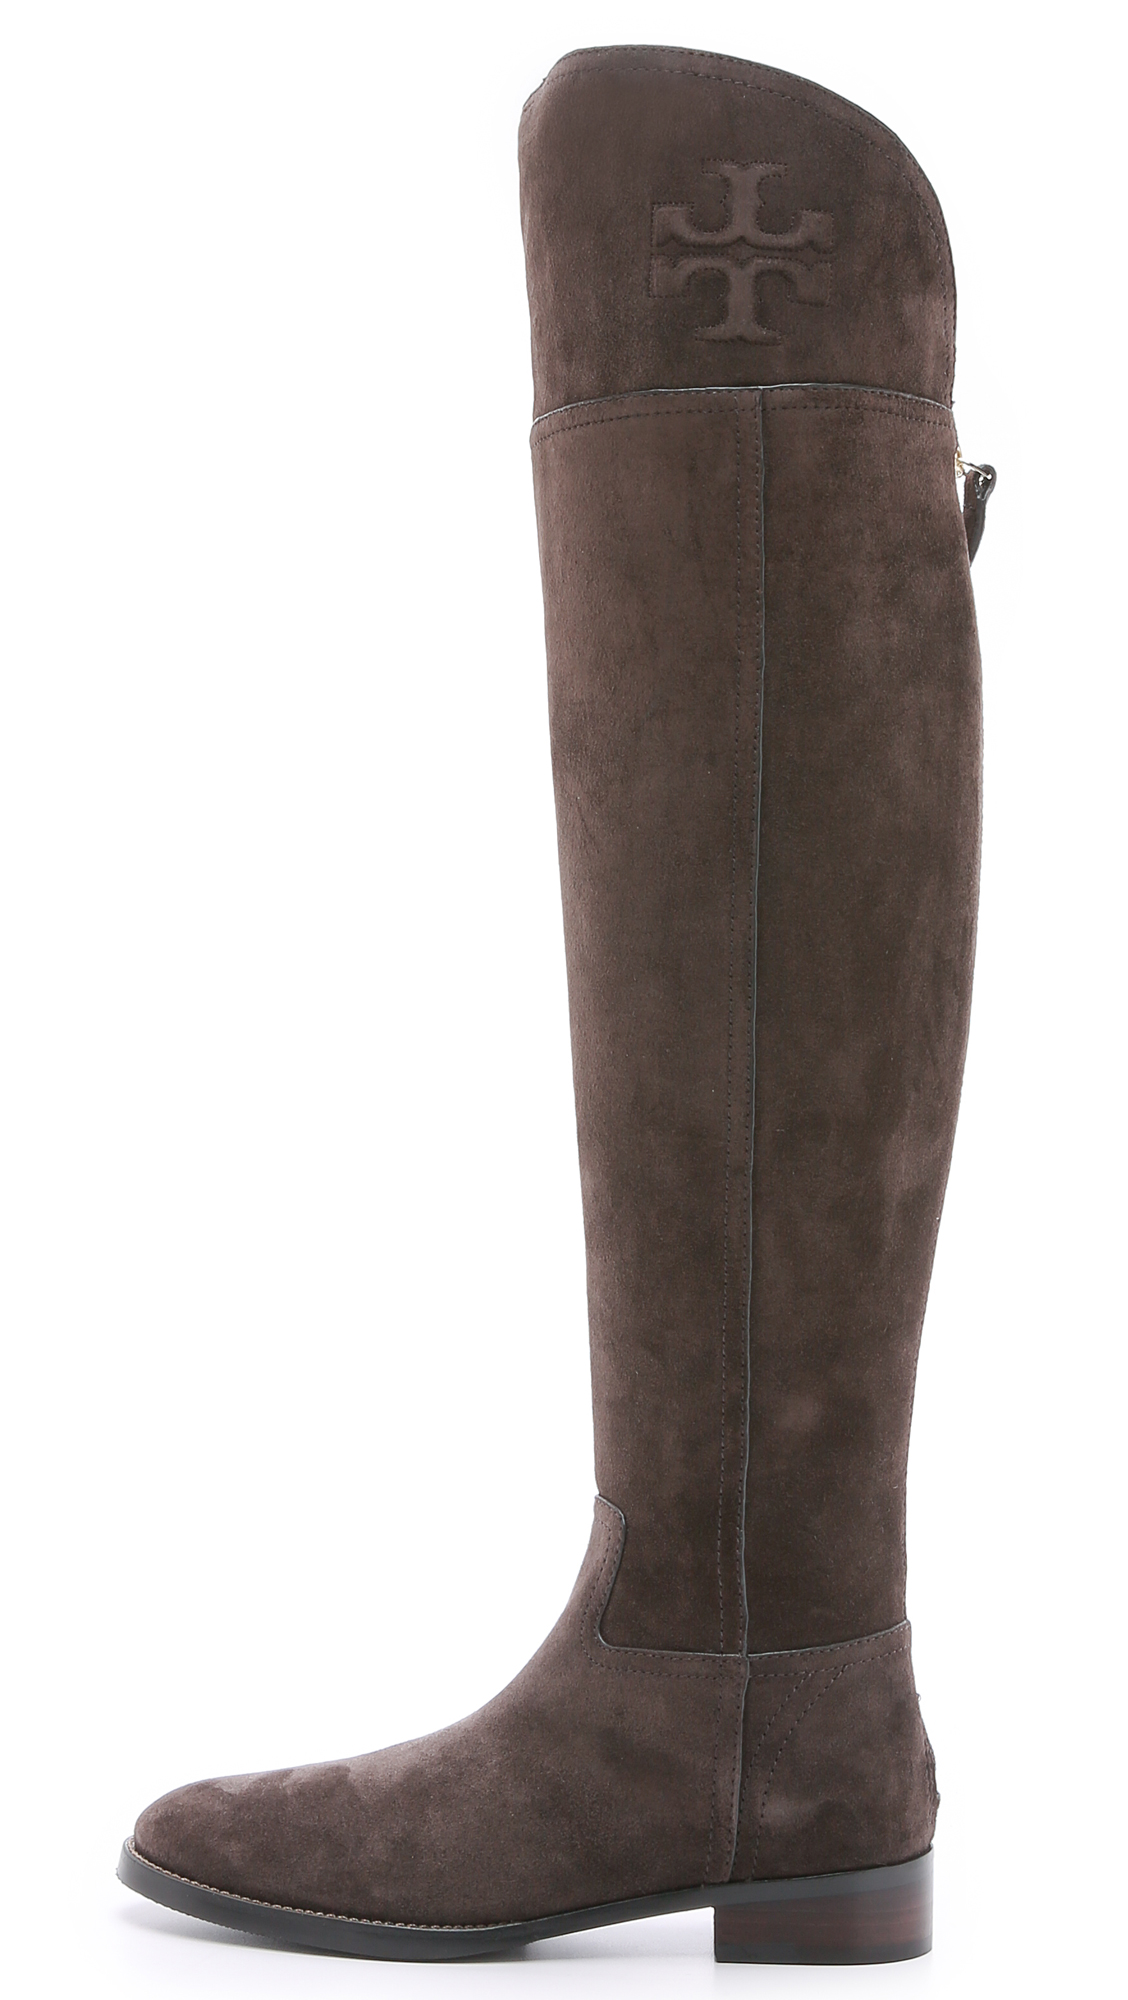 e42d10d46 Tory Burch Simone Suede Over the Knee Boots